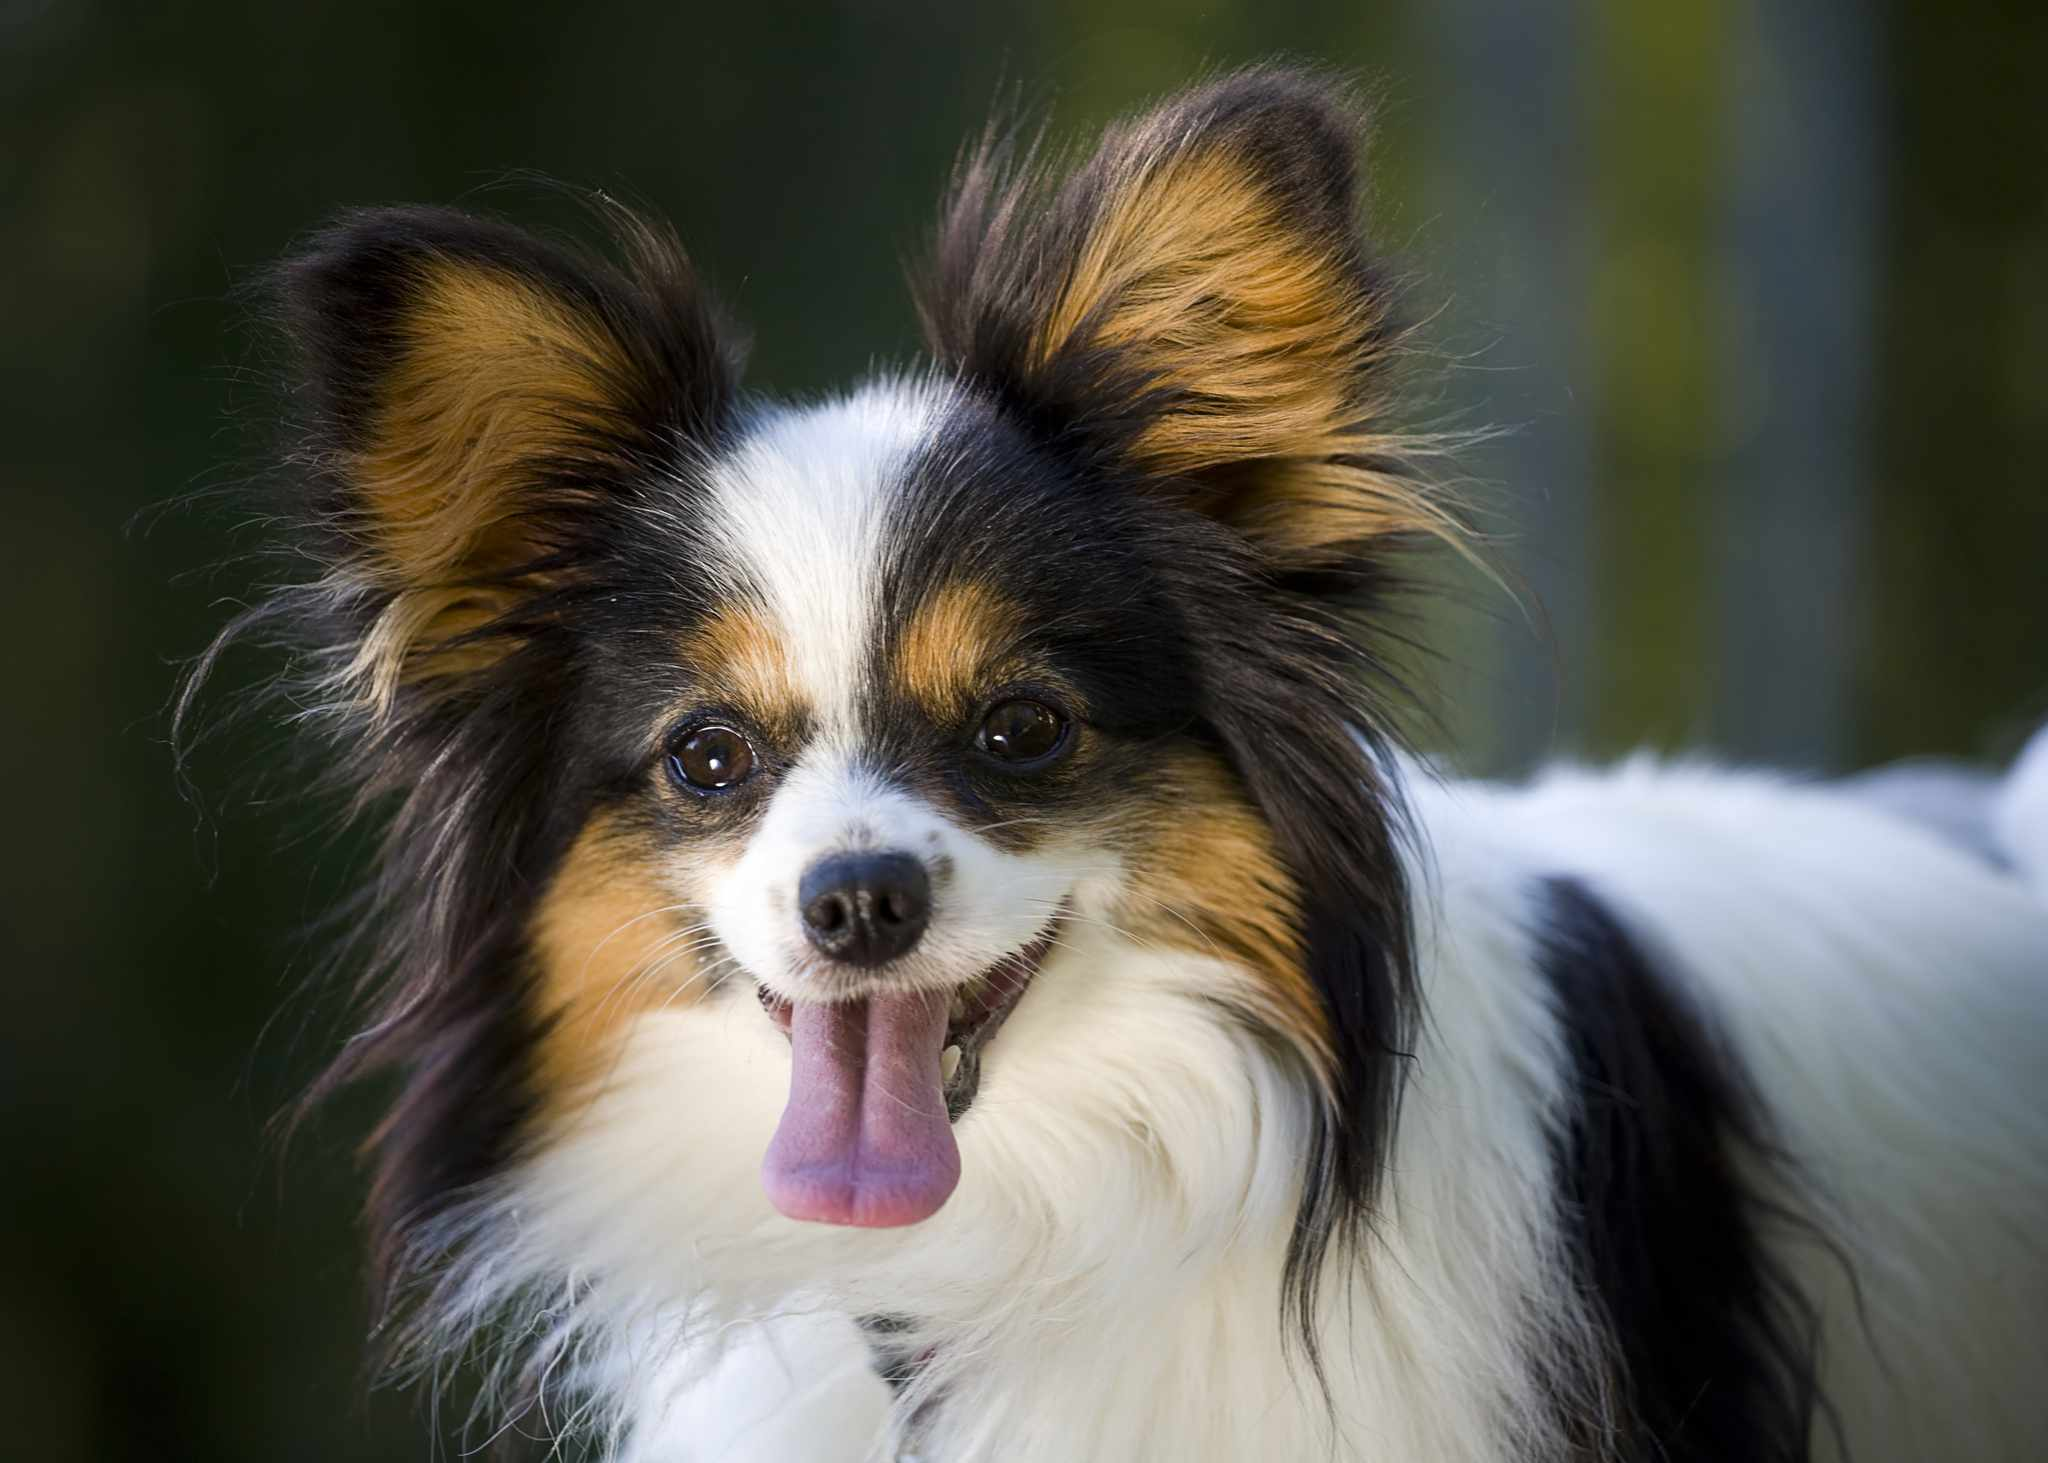 close up of papillon dog face with ears perked, tongue out, and smiling